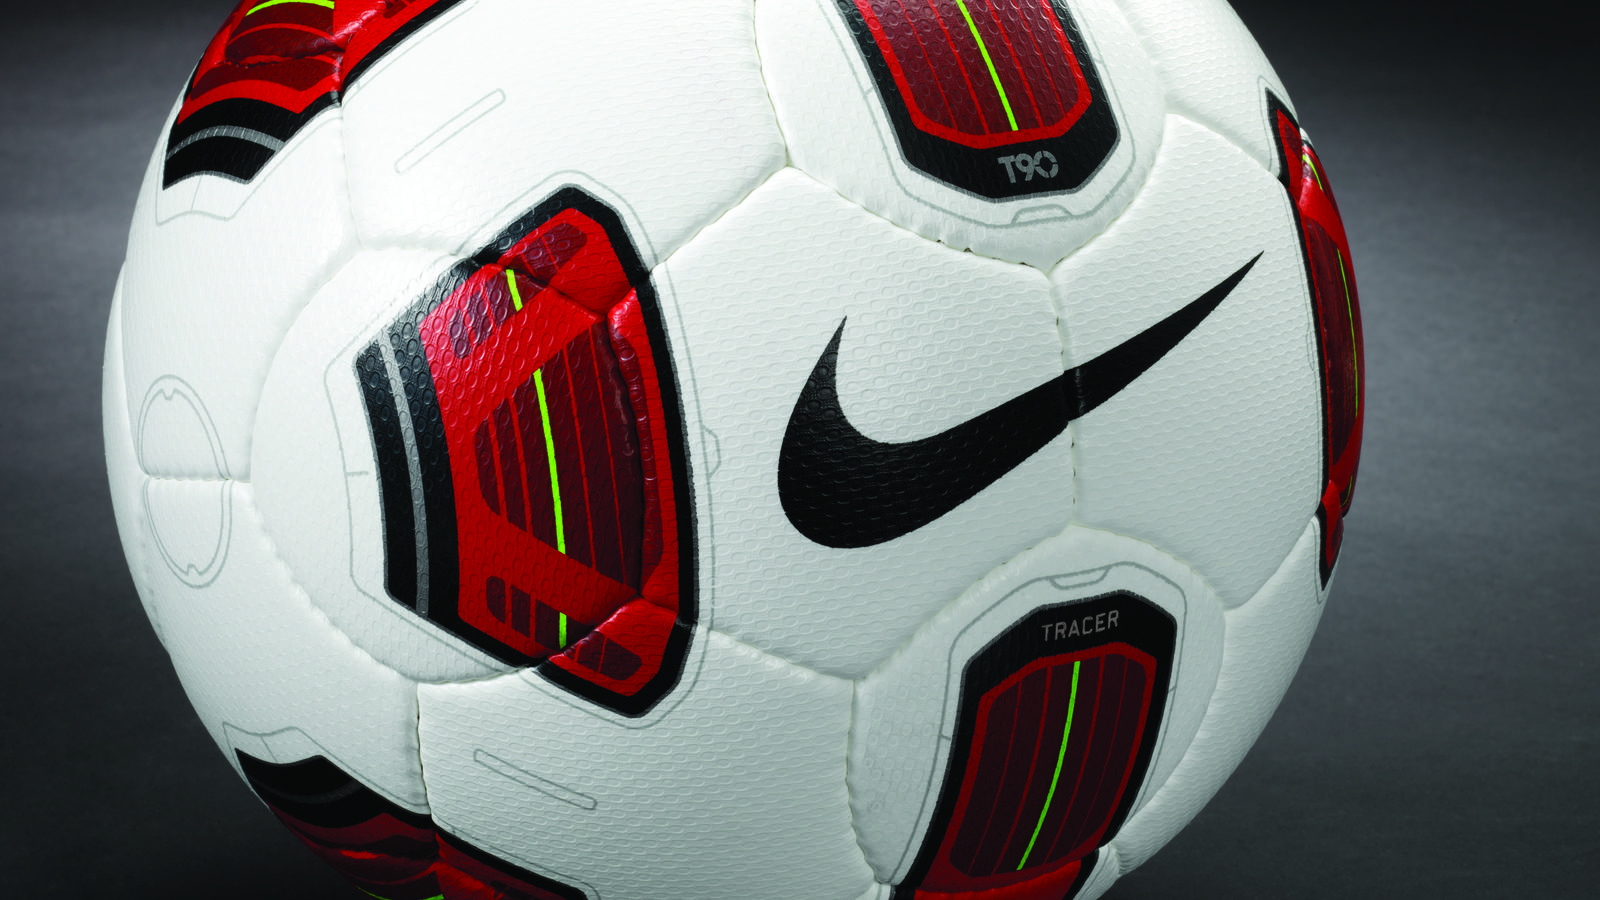 Built to be the World's Top Performing Football